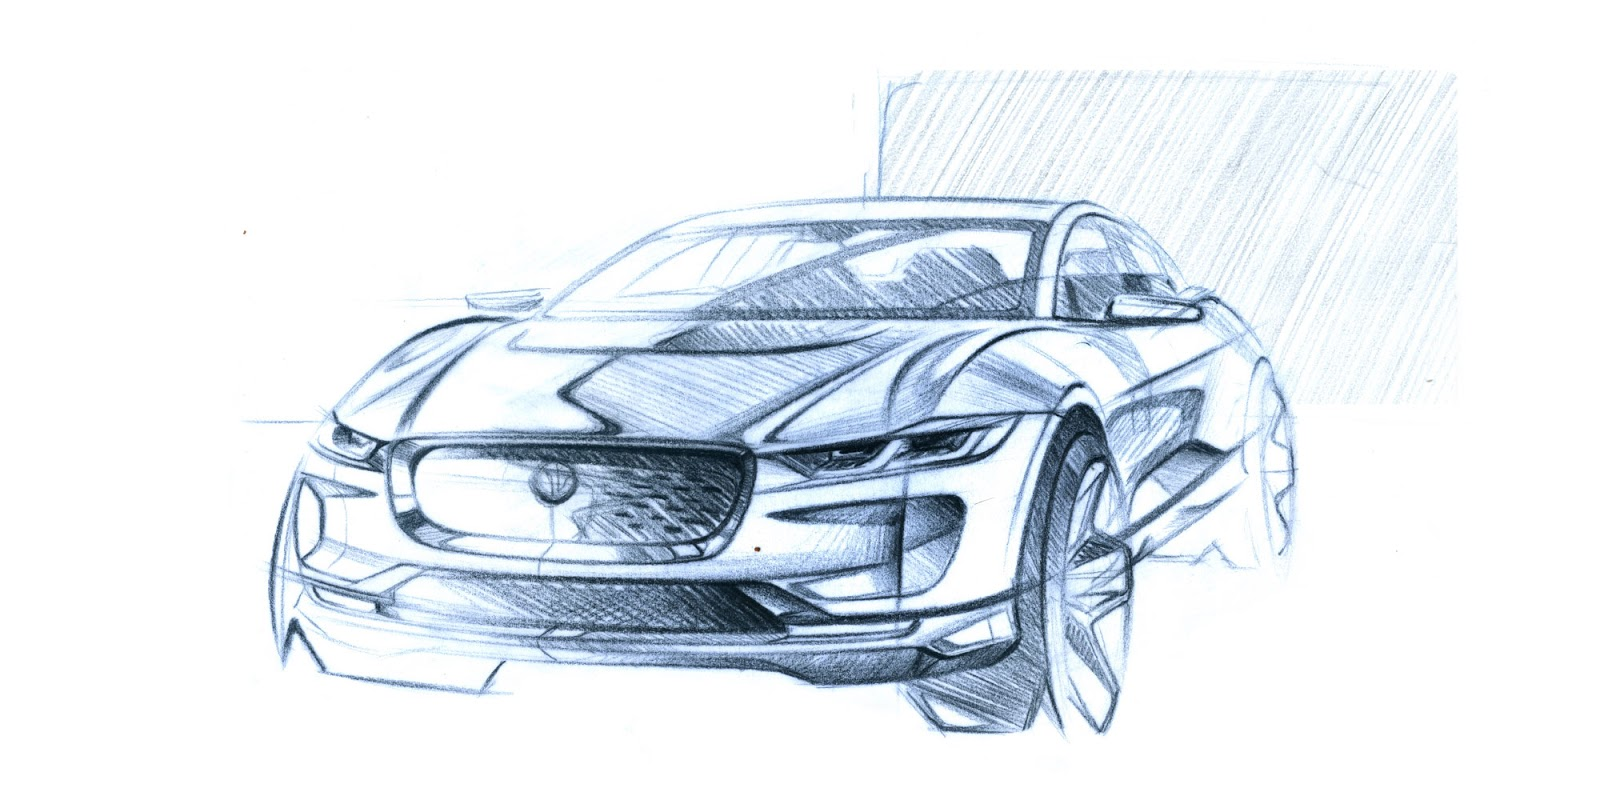 Jaguar I-Pace pencil sketch - front view